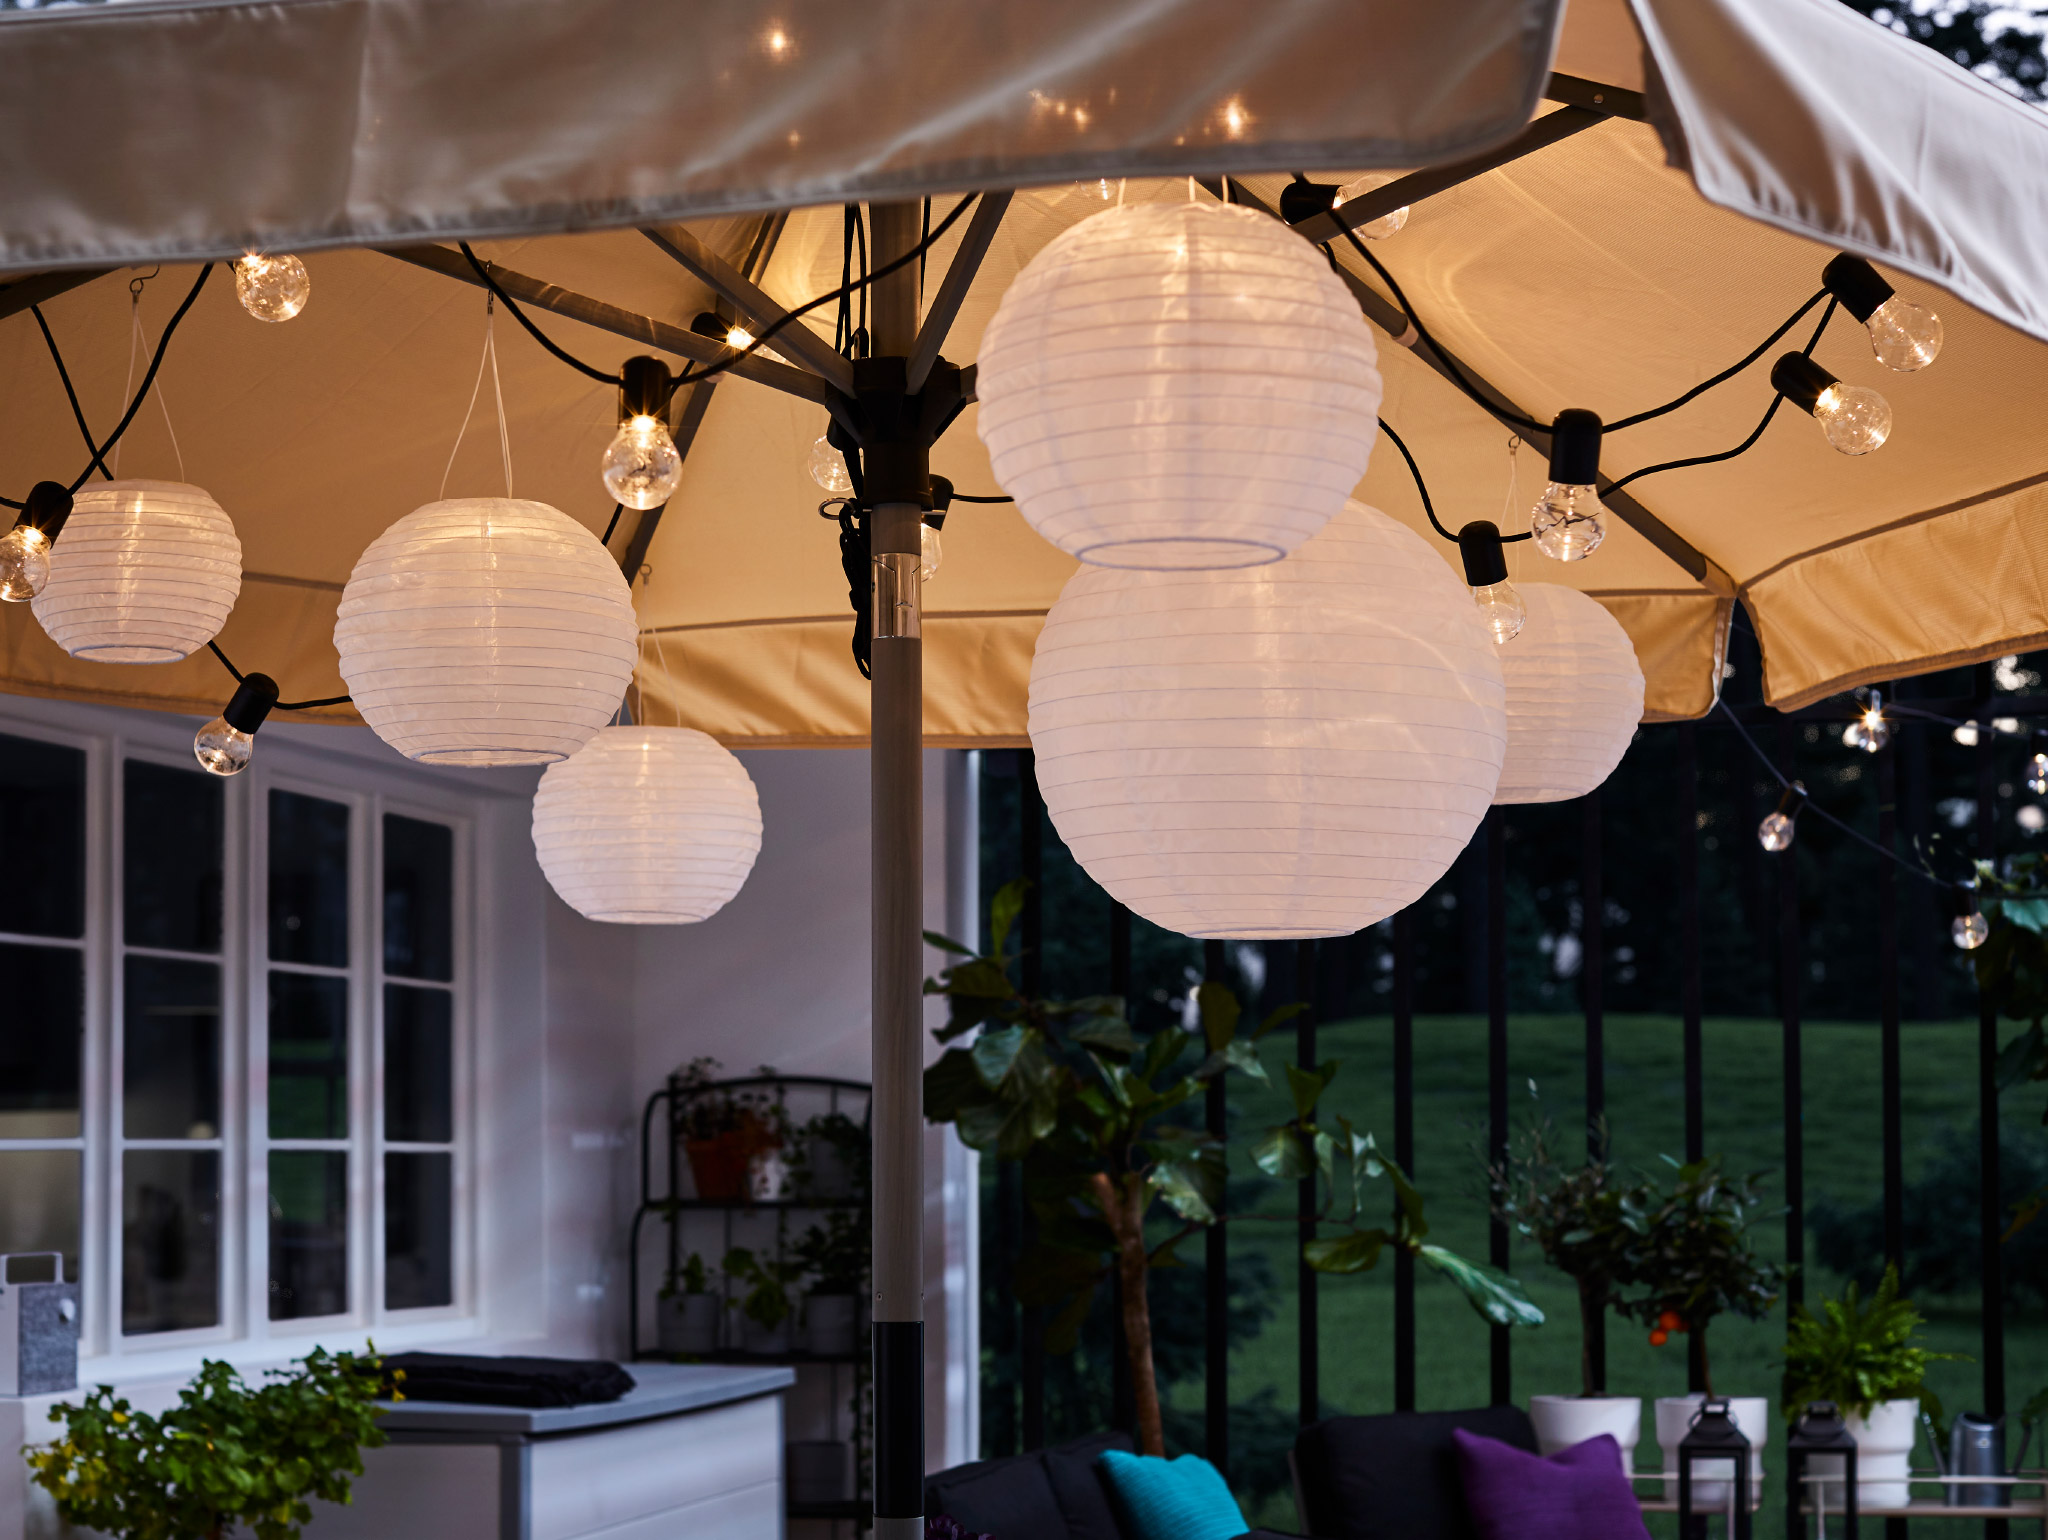 A black lighting chain and round pendant lamps hang under an open parasol, and they give a warm and cosy light.